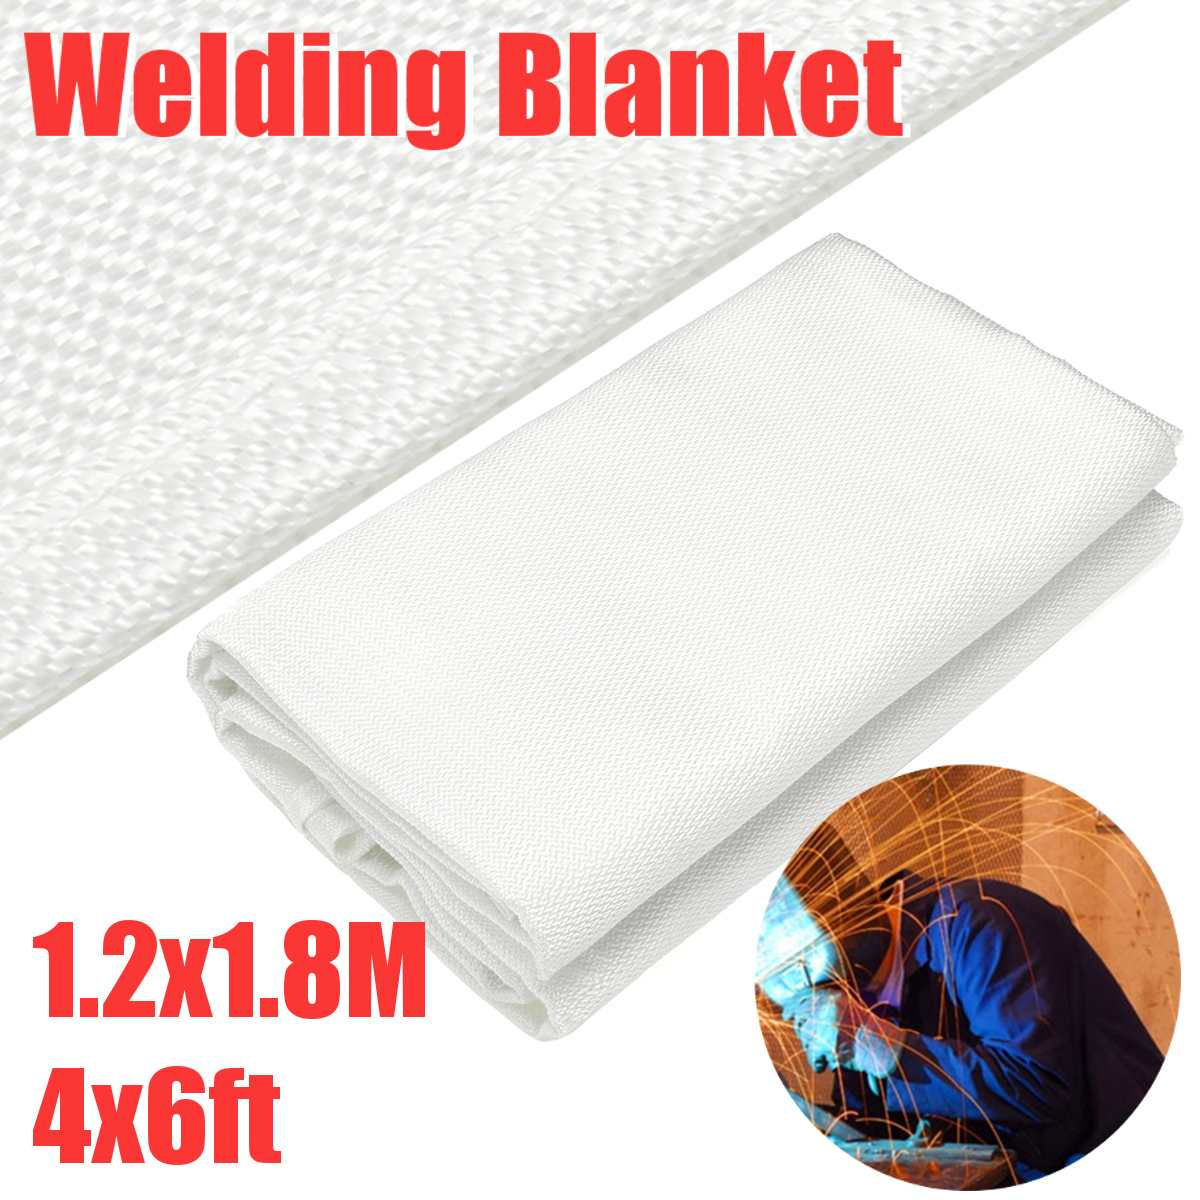 Fire Blanket Welding Blankets Fireproof Survival Escape Blanket High Temperature Resistant Heavy Duty Protective Emergency